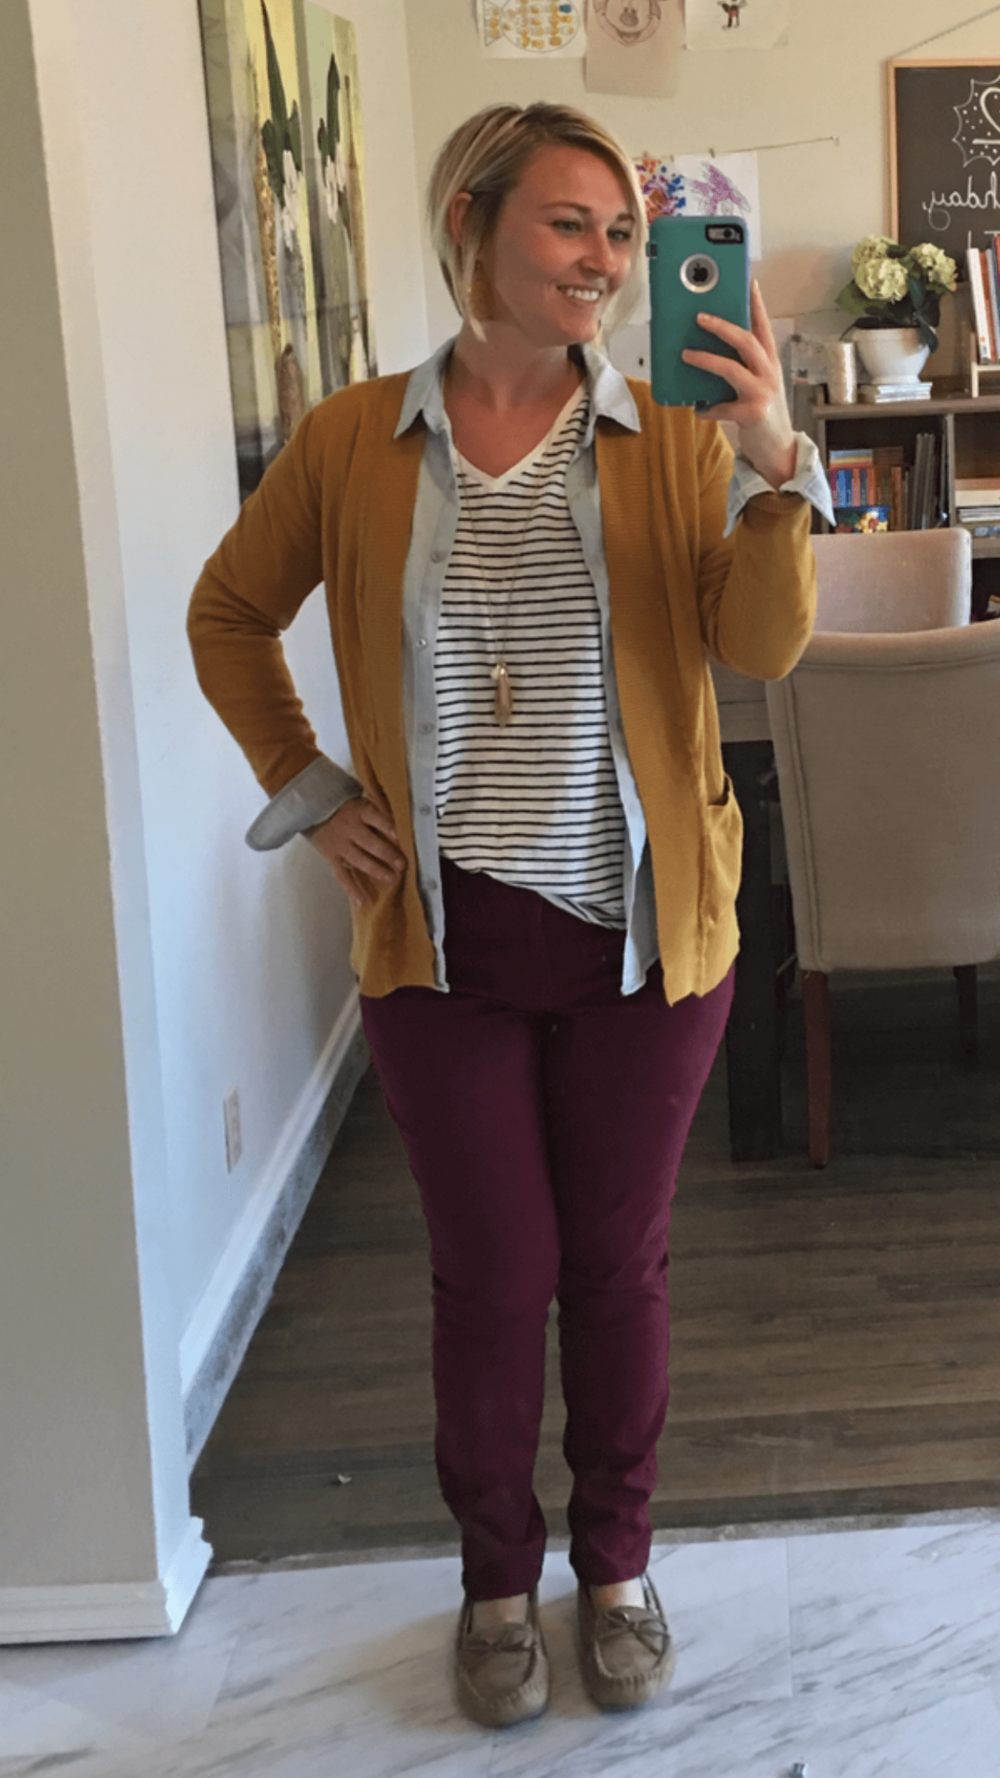 Striped Tee + Chambray Shirt (open) + Mustard Cardigan + Burgundy Pants + Moccasin Slippers